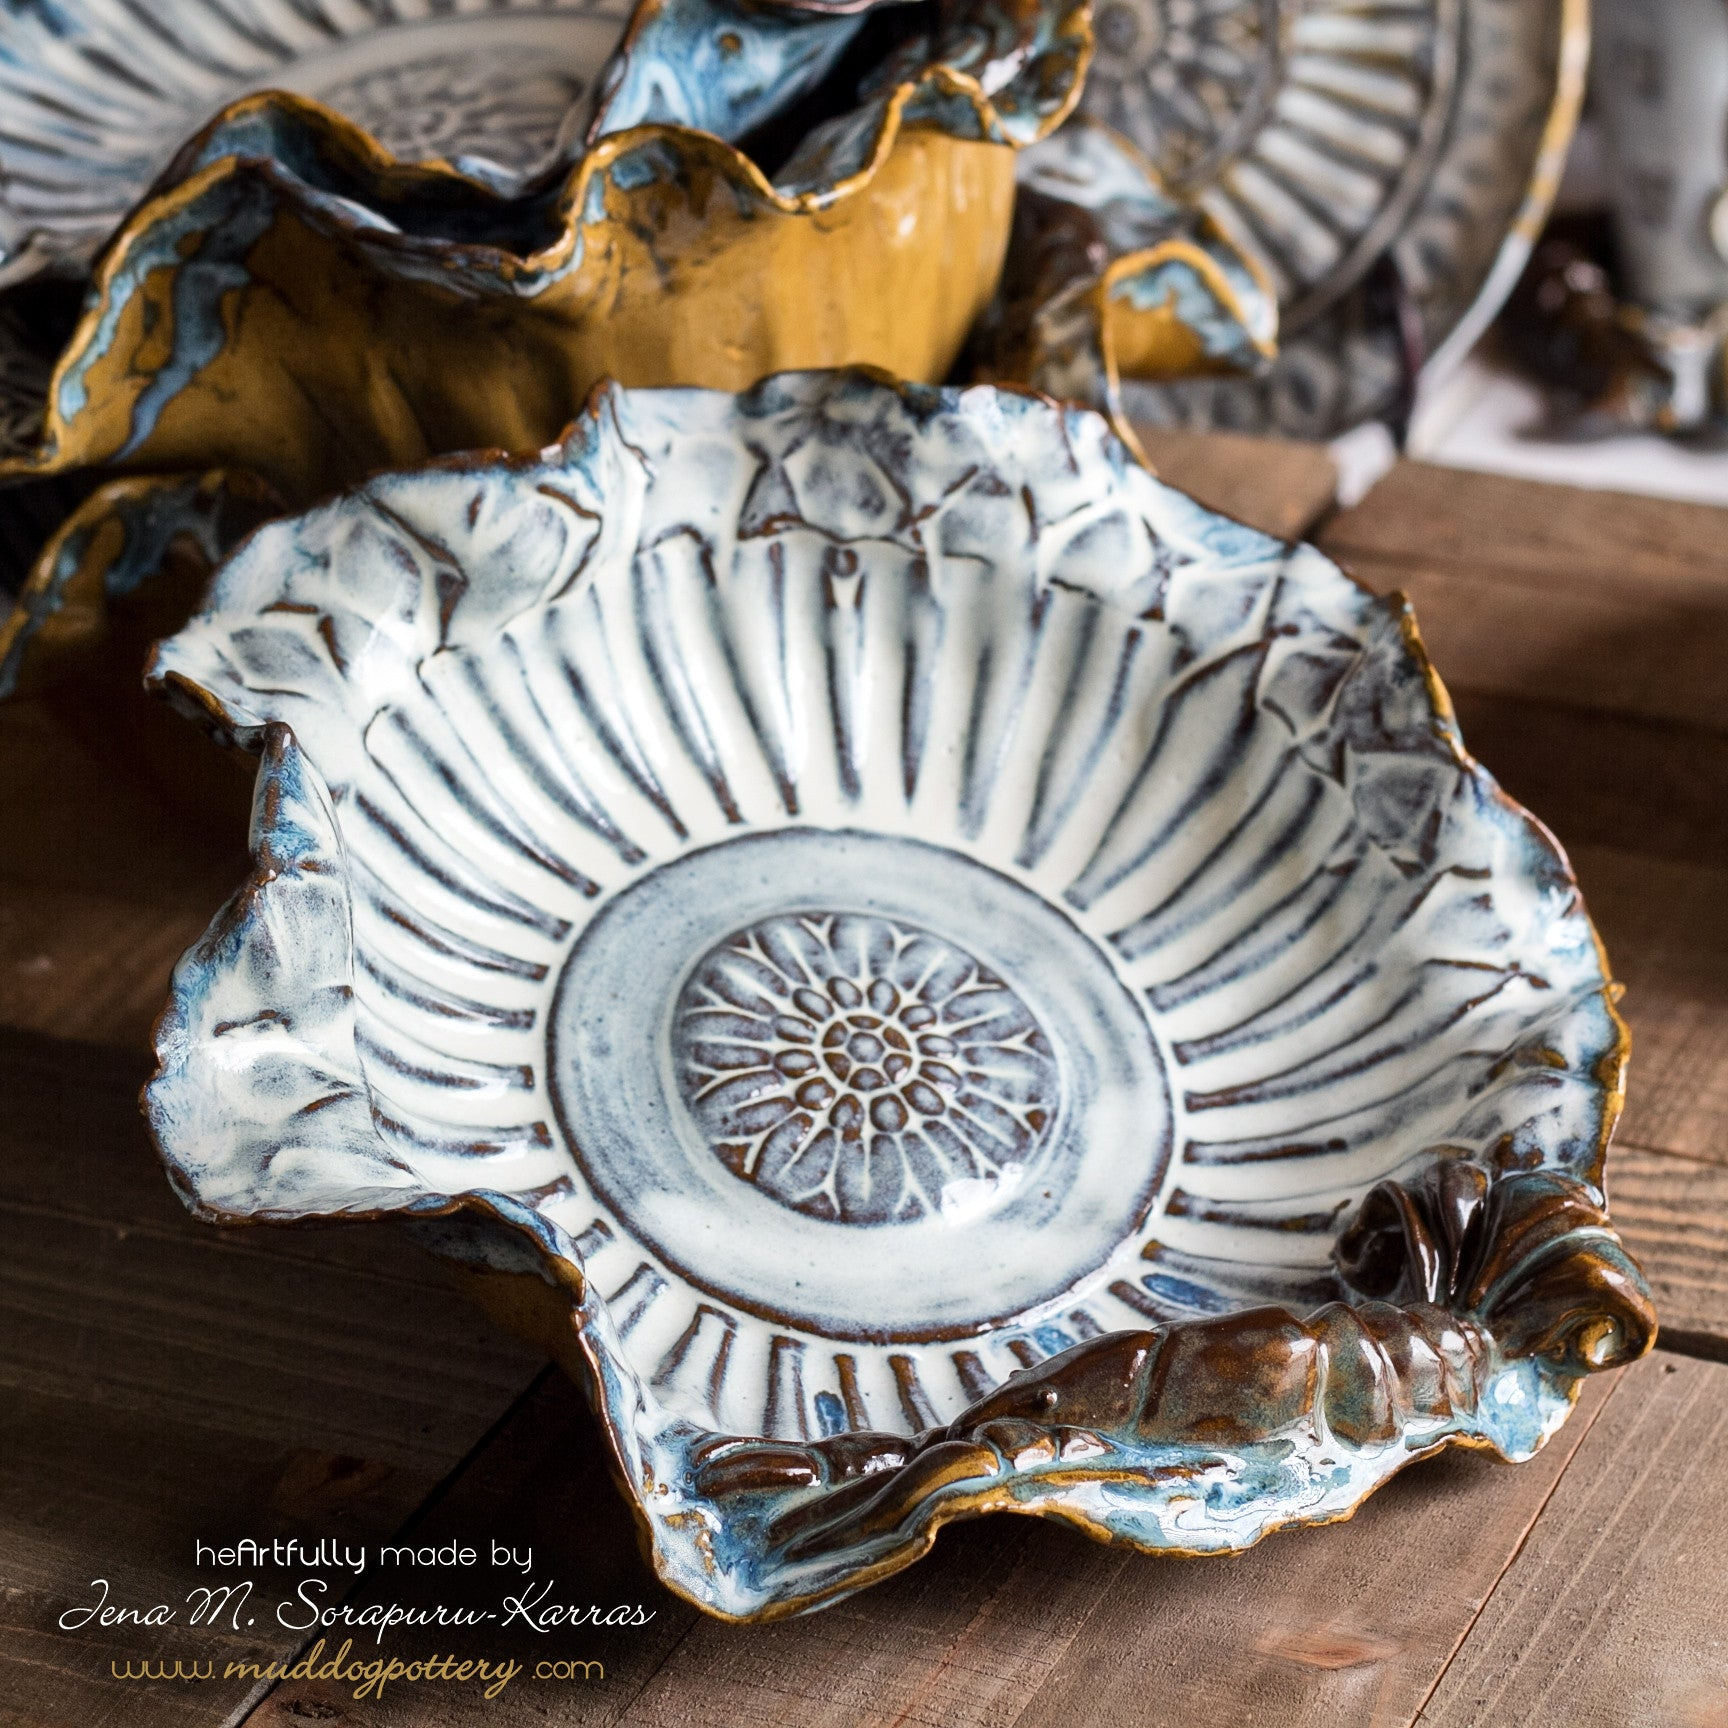 The Blue Crawfish (Krevis Blé) with Gold Accents Small Serving Bowl